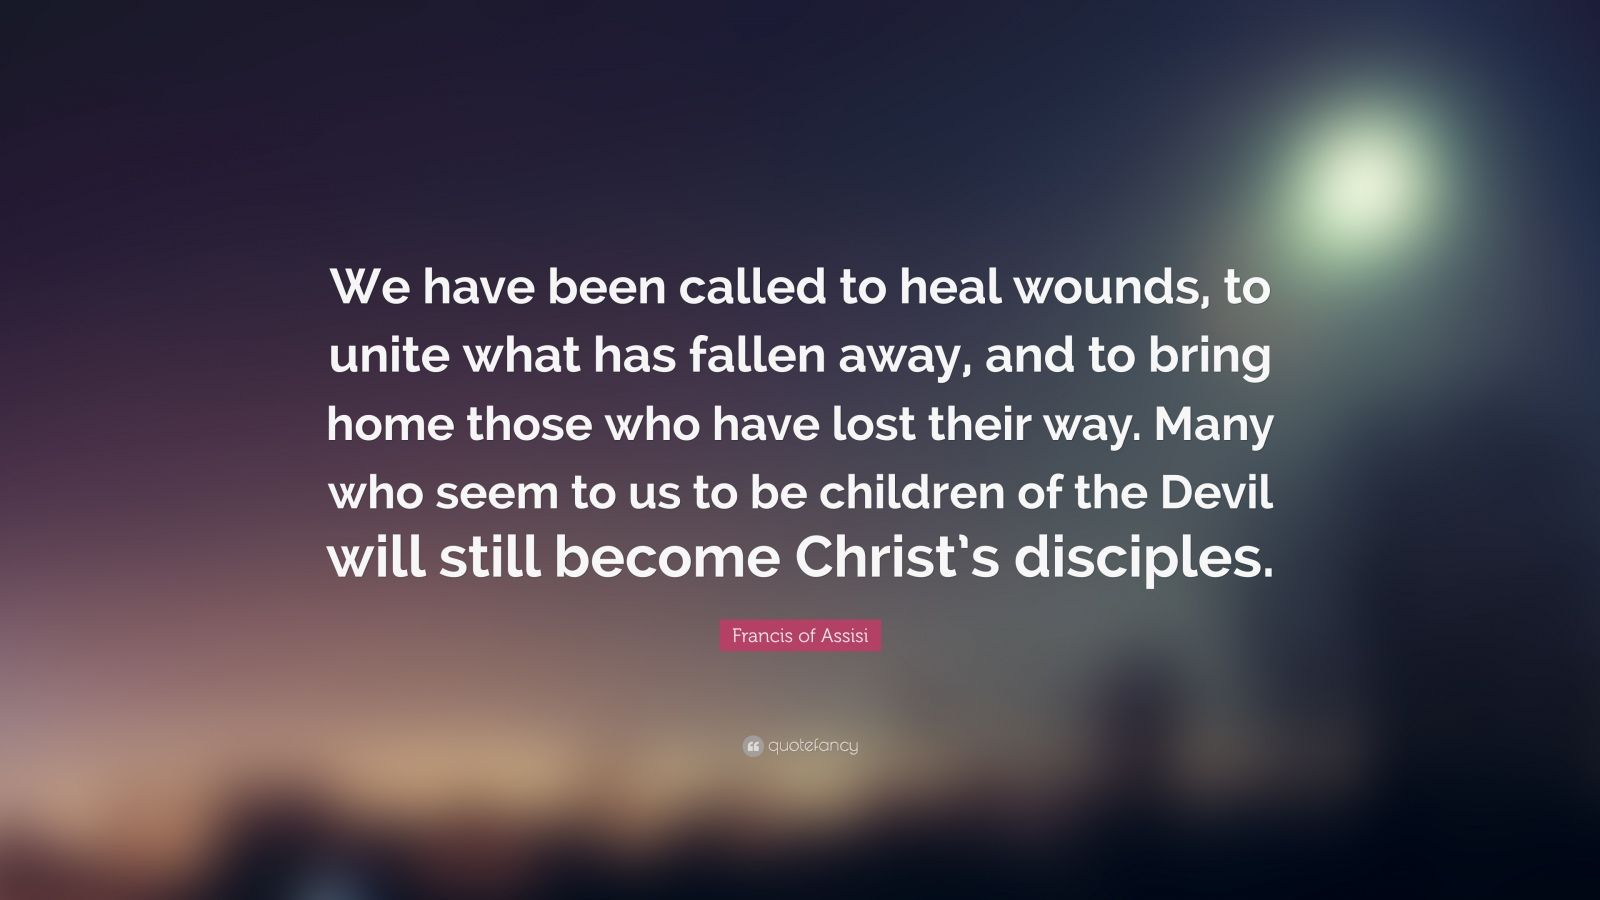 """Francis of Assisi Quote: """"We have been called to heal wounds, to unite what has fallen away, and to bring home those who have lost their way. Many who seem to us to be children of the Devil will still become Christ's disciples."""""""